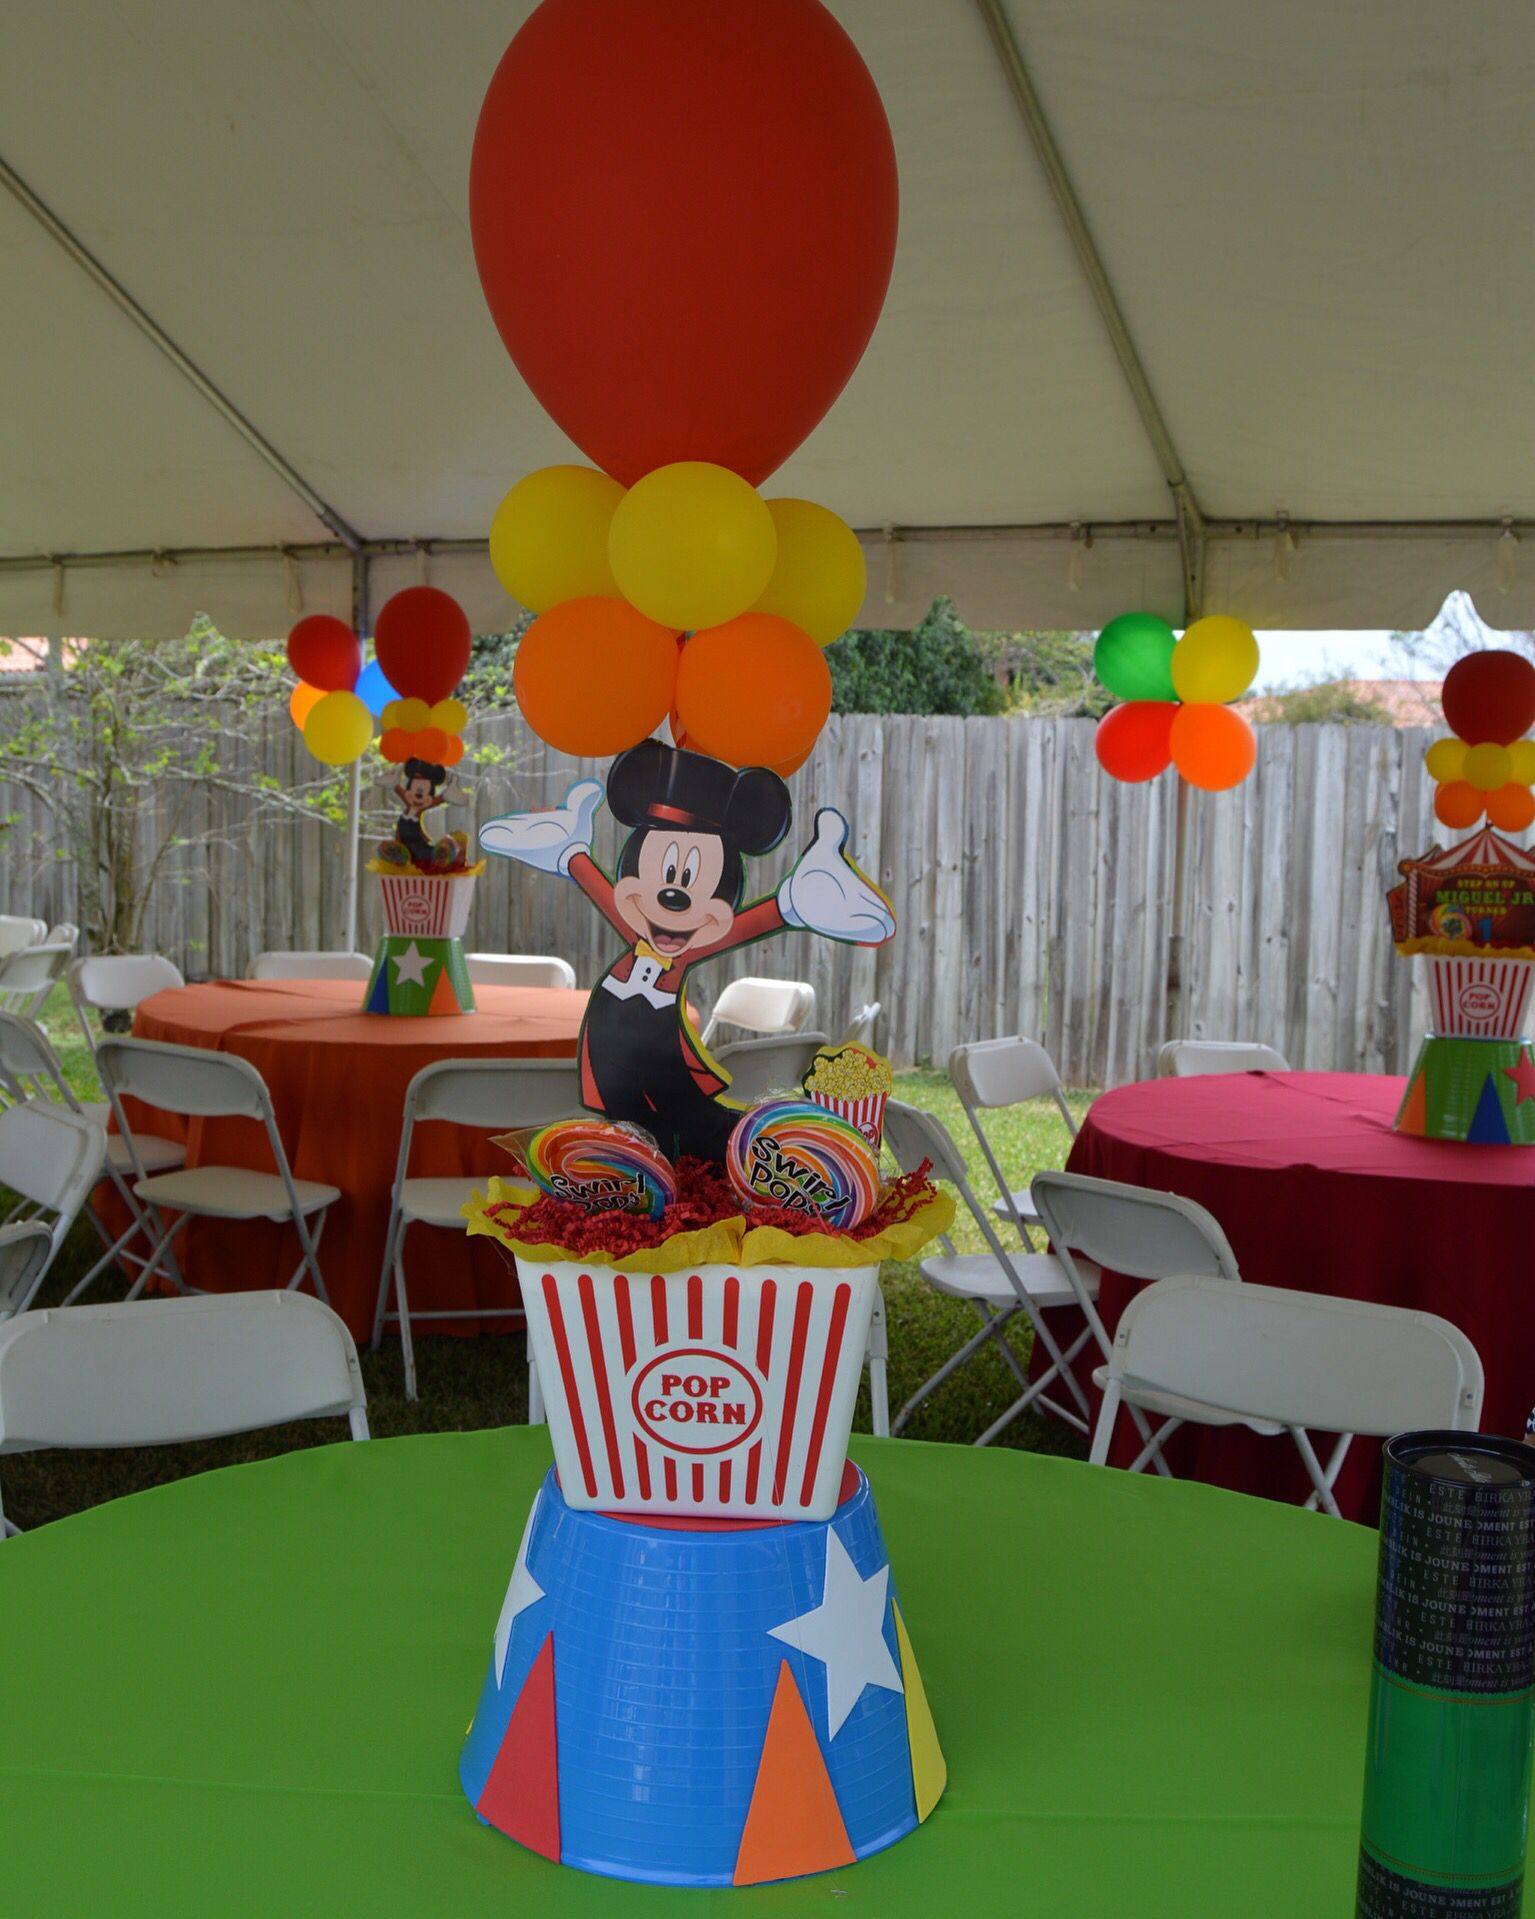 Mickeys Circus Table Decorations Circus Party Centerpieces Circus Birthday Party Decorations Circus Theme Party